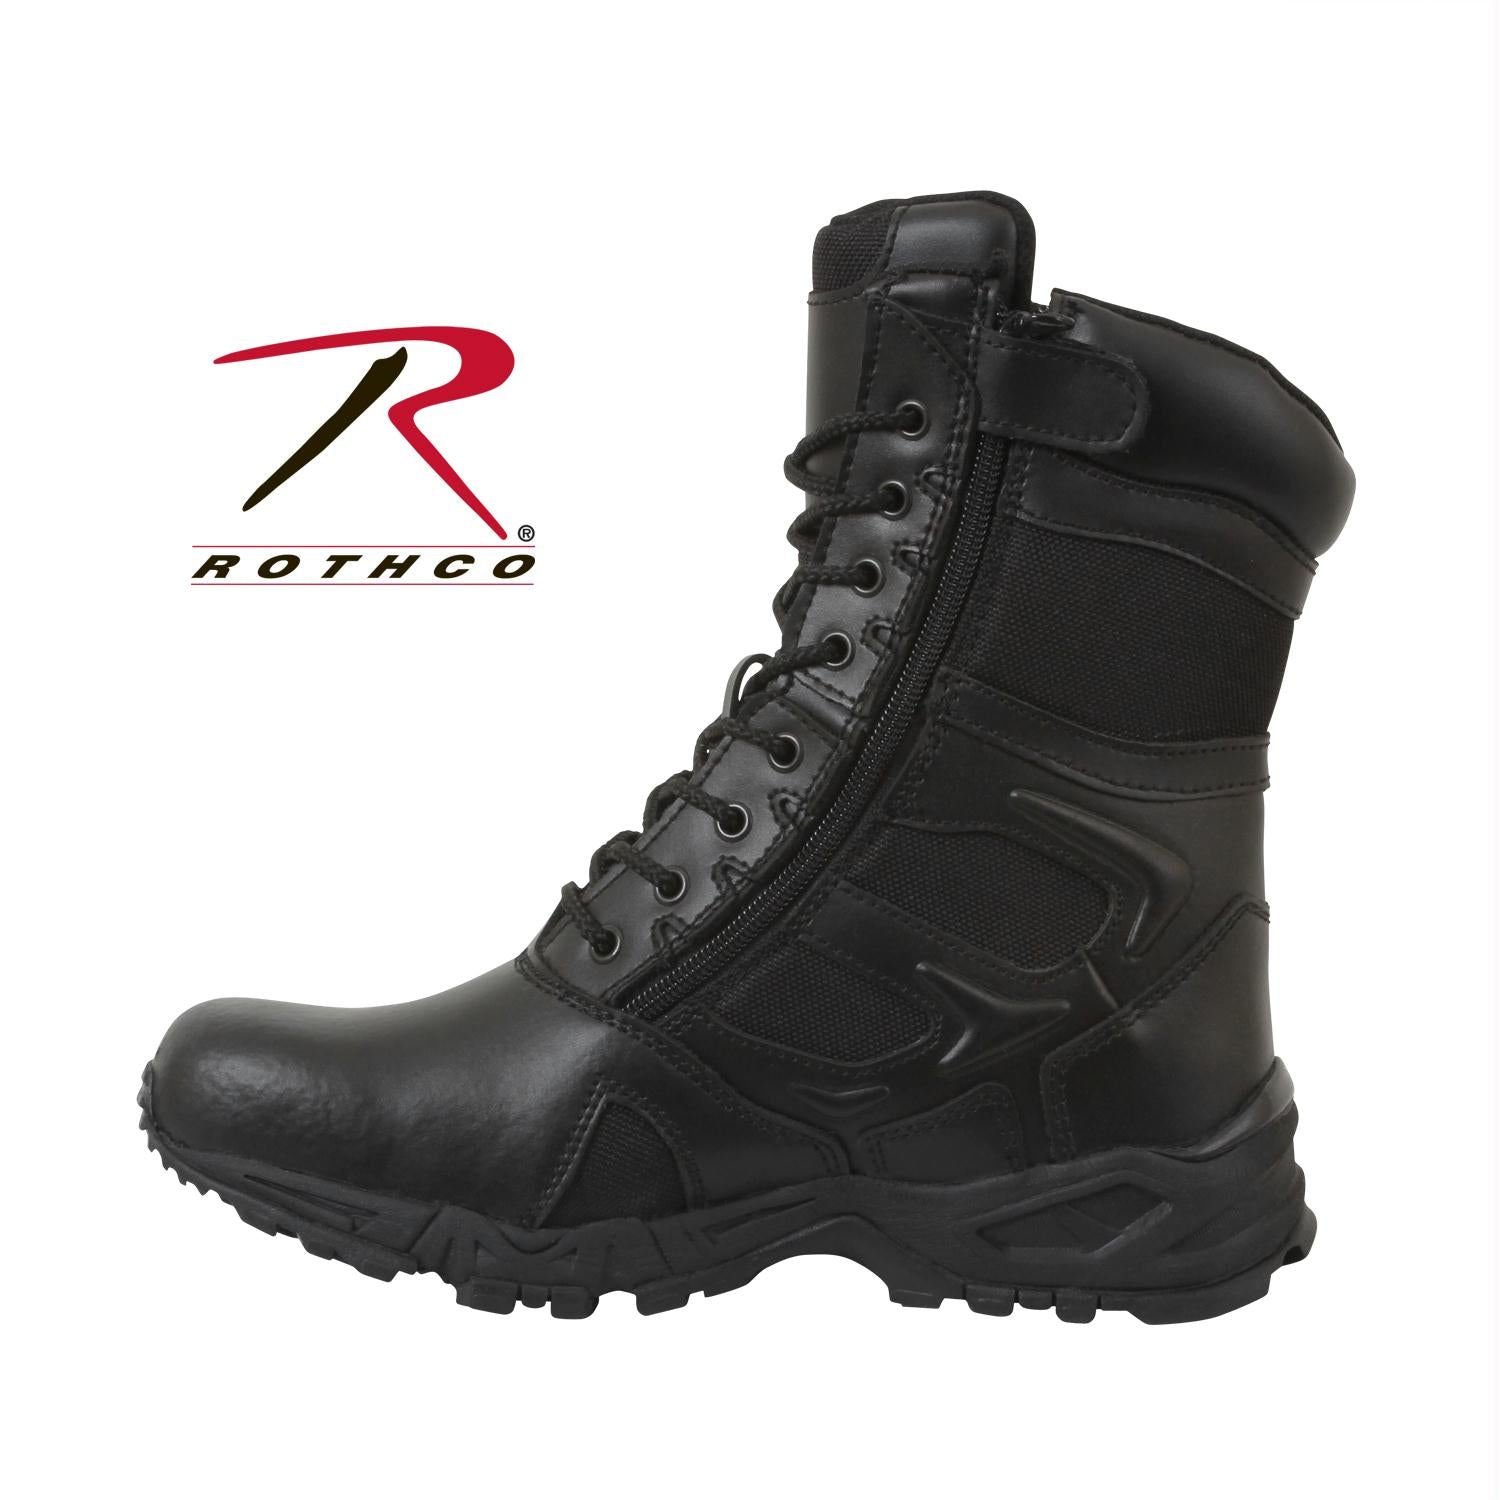 Rothco Forced Entry Deployment Boot With Side Zipper - 7 / Wide